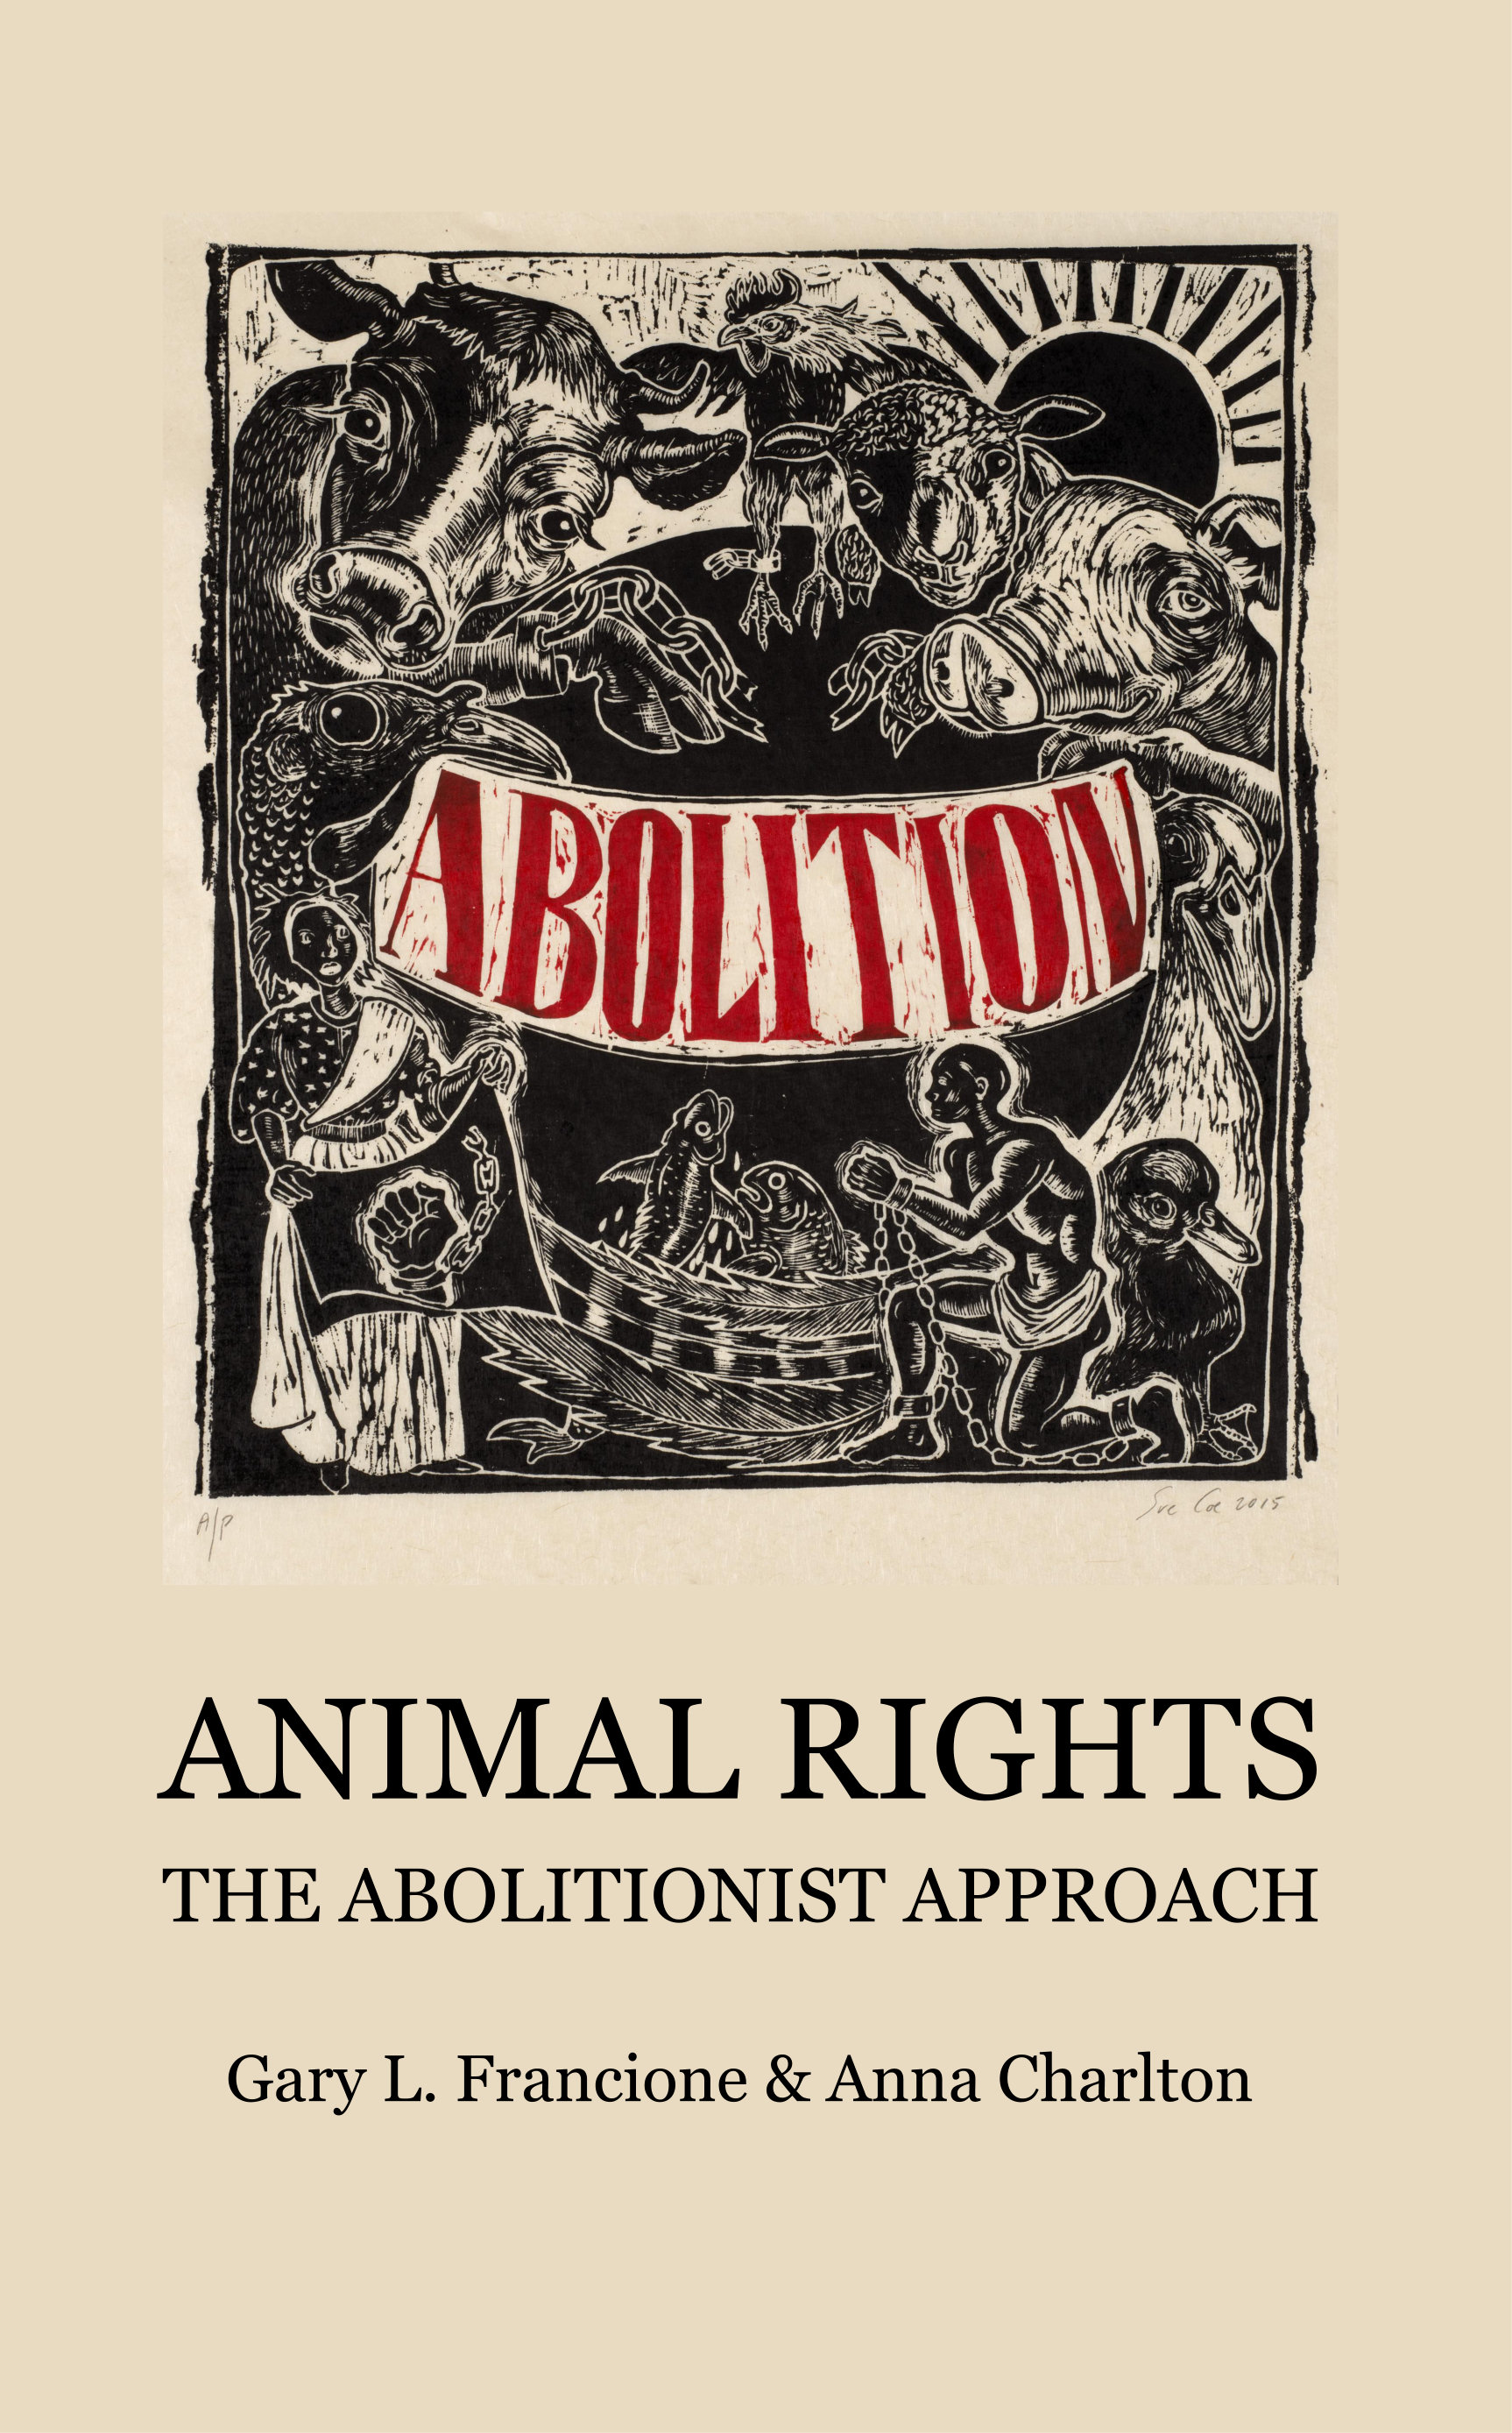 argumentative essay on animal rights books animal rights the  books animal rights the abolitionist approach animal rights the abolitionist approach essay animal rights